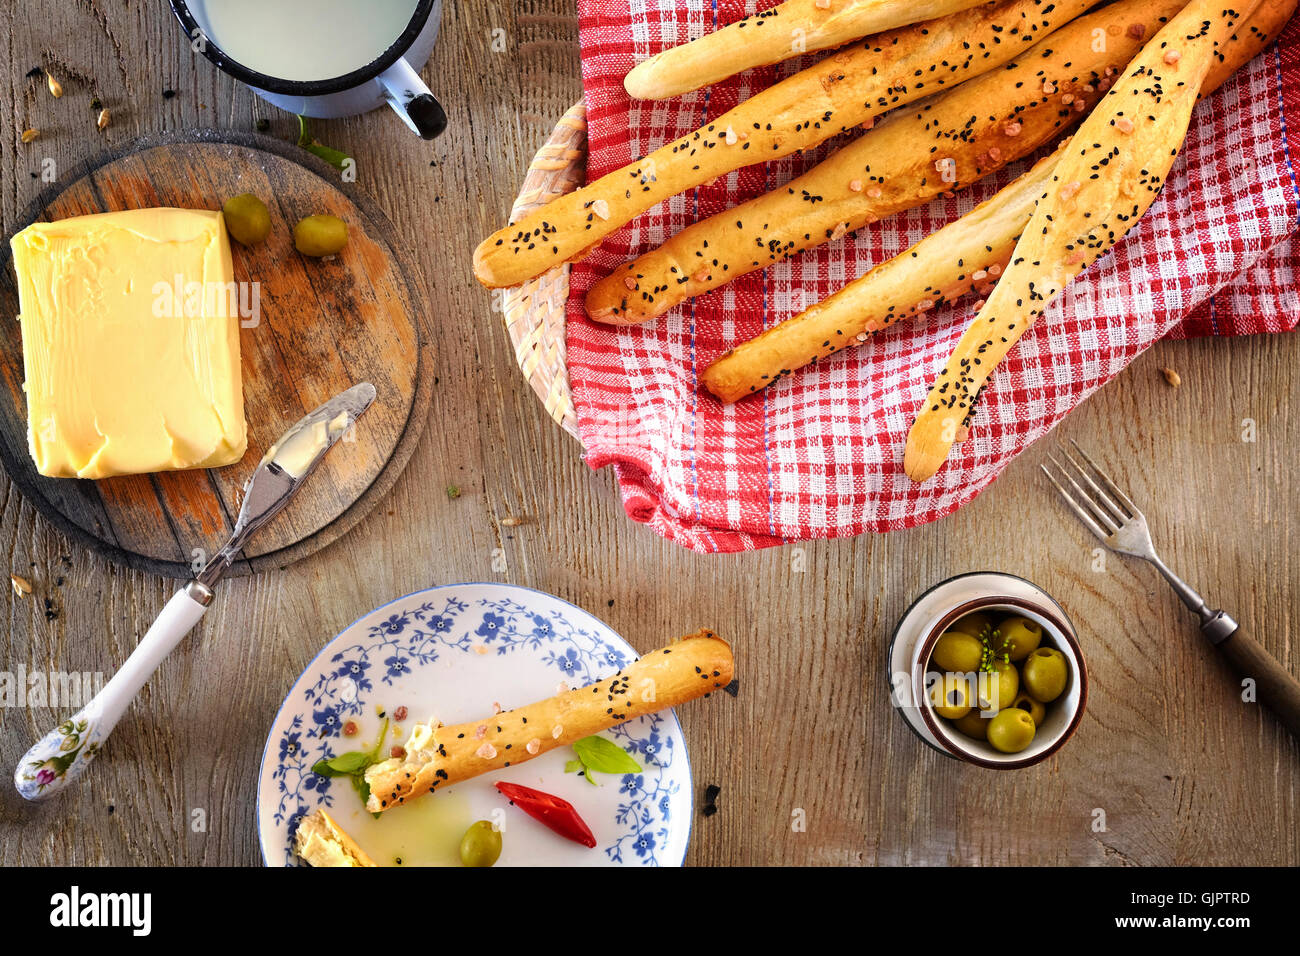 Bread sticks with butter, breakfast setting on a wooden table. - Stock Image